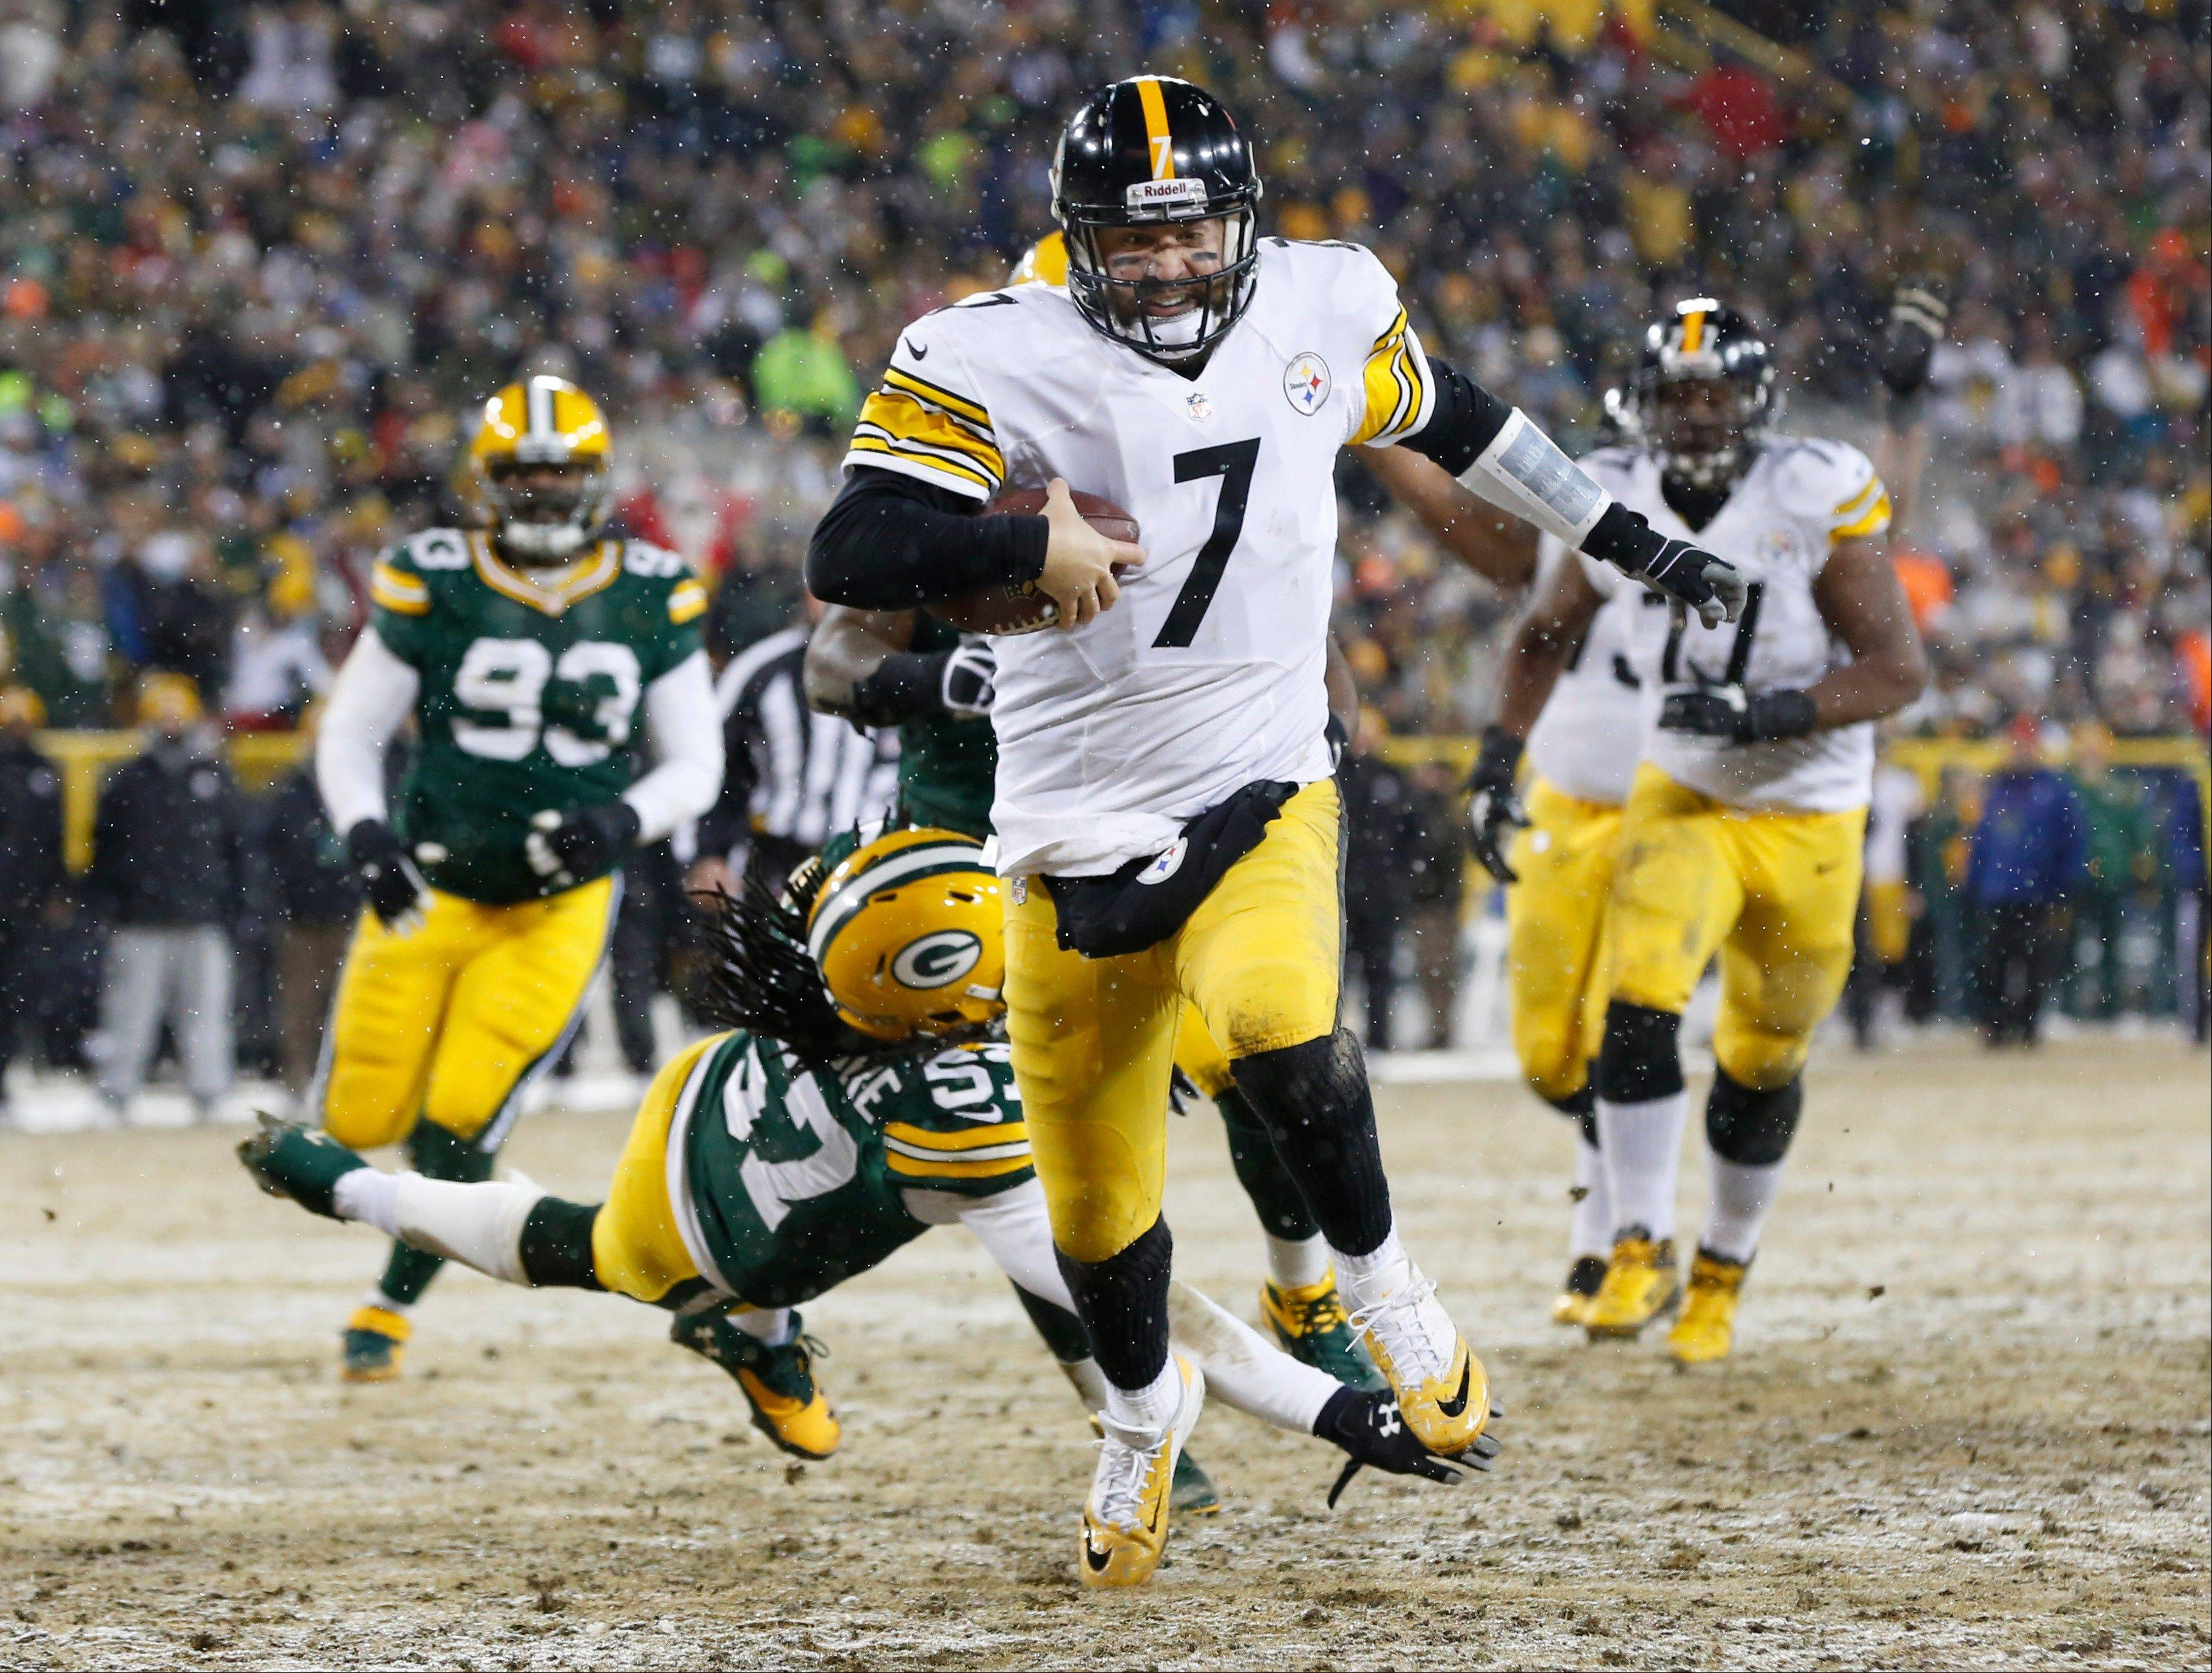 Pittsburgh Steelers' Ben Roethlisberger breaks away from Green Bay Packers' Jamari Lattimore (57) for a touchdown run during the second half of an NFL football game Sunday, Dec. 22, 2013, in Green Bay, Wis.